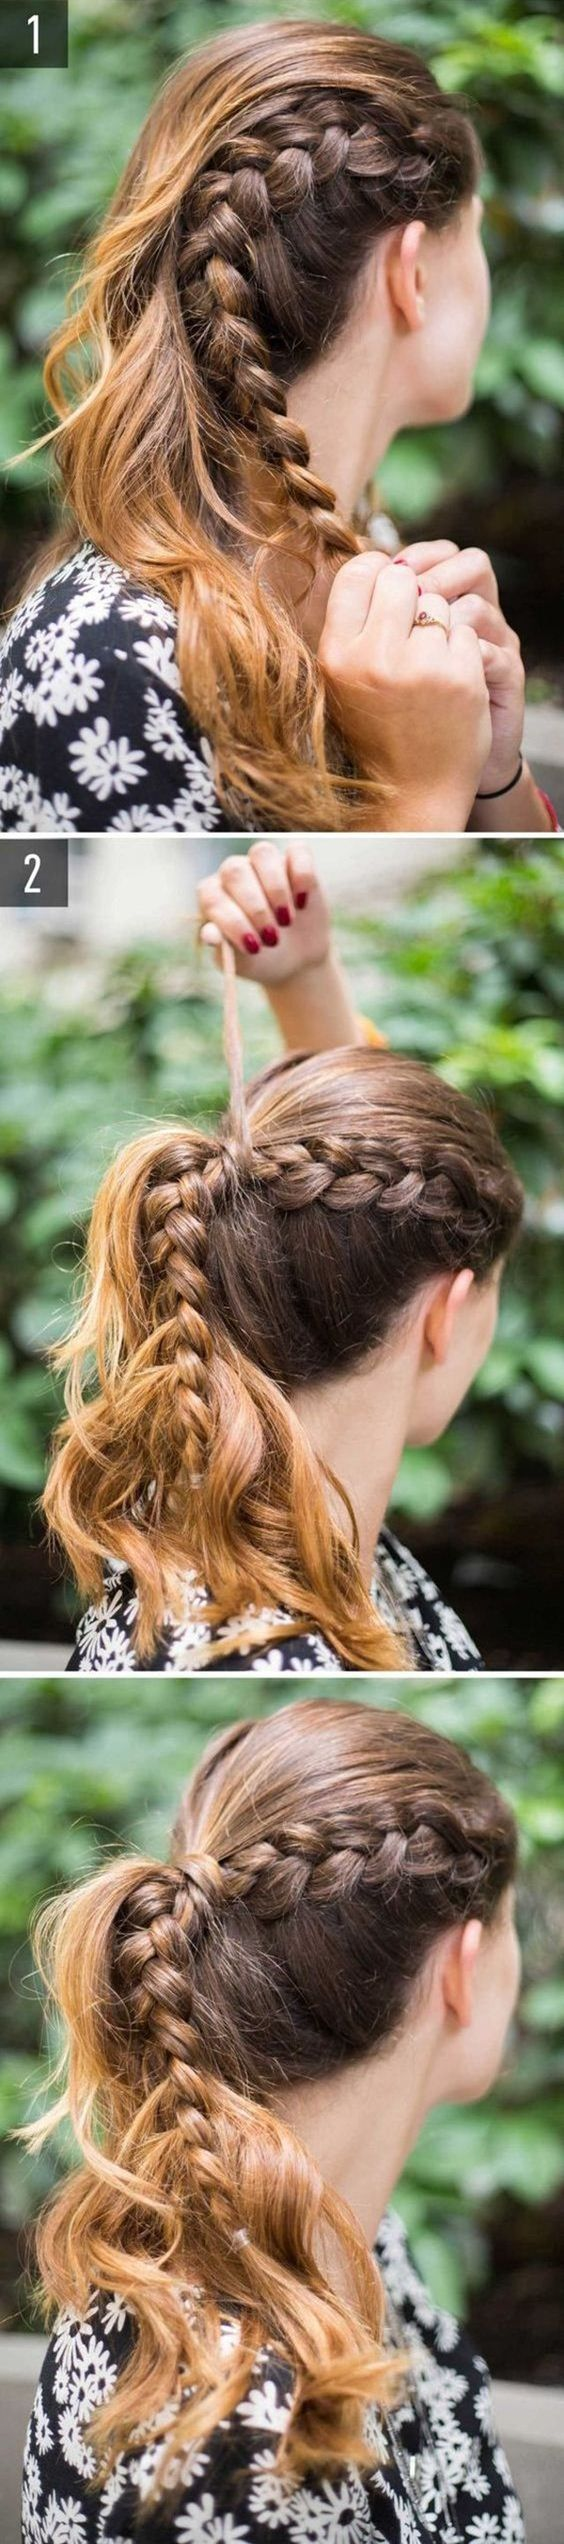 best hair images on pinterest long hair cute hairstyles and